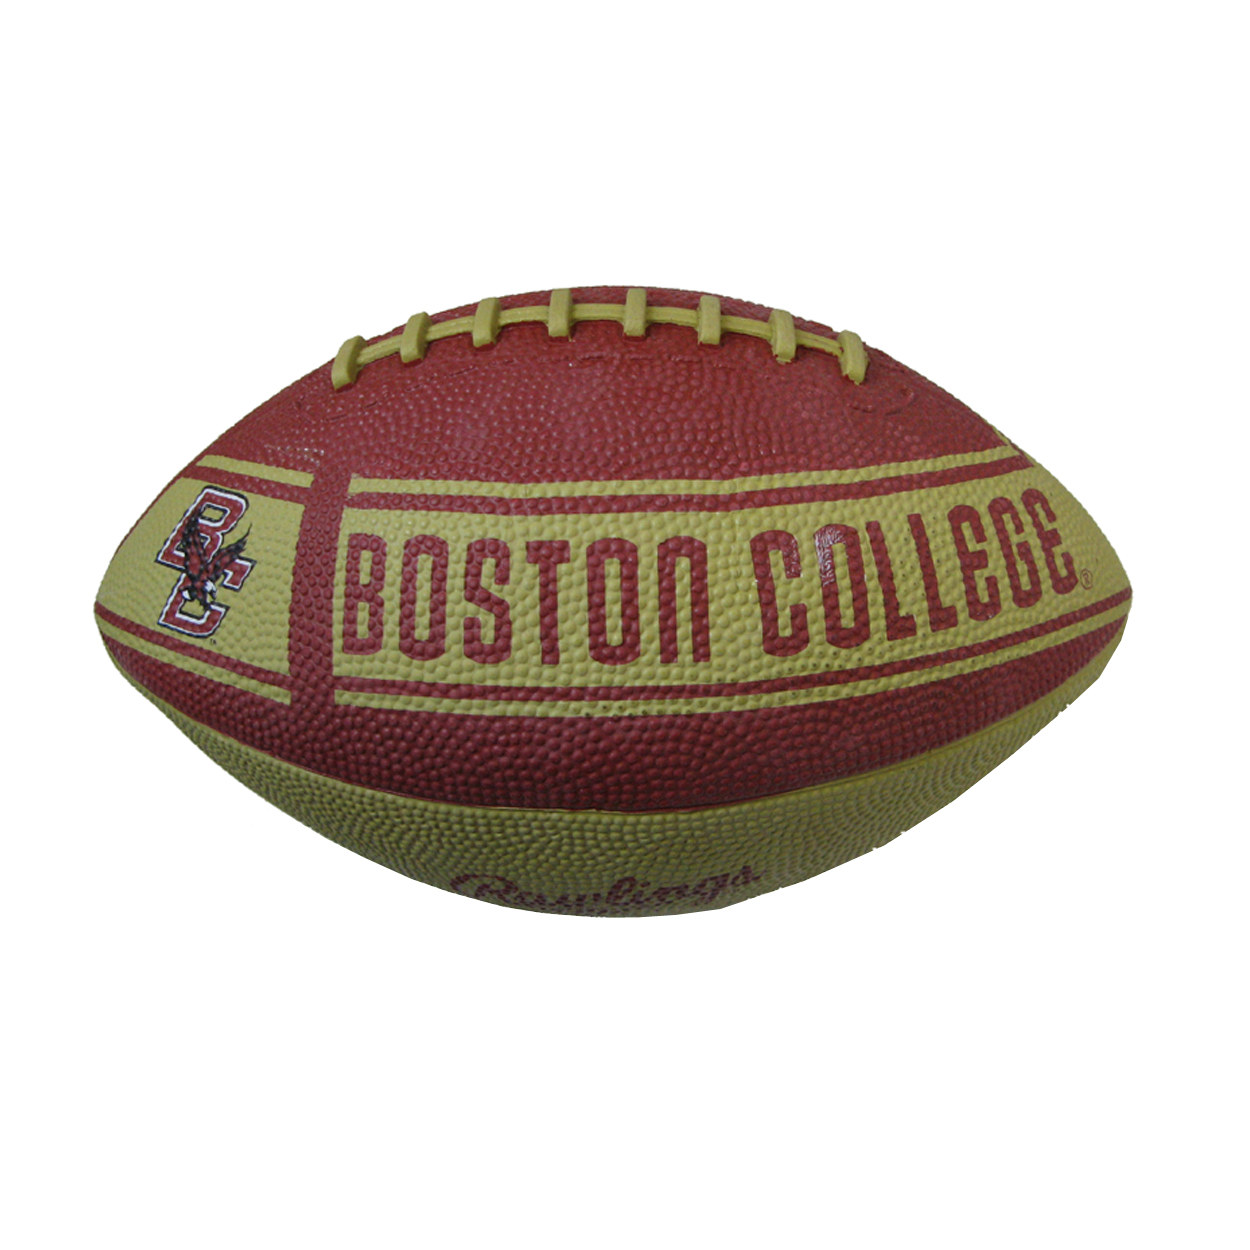 Hail Mary Football Boston College